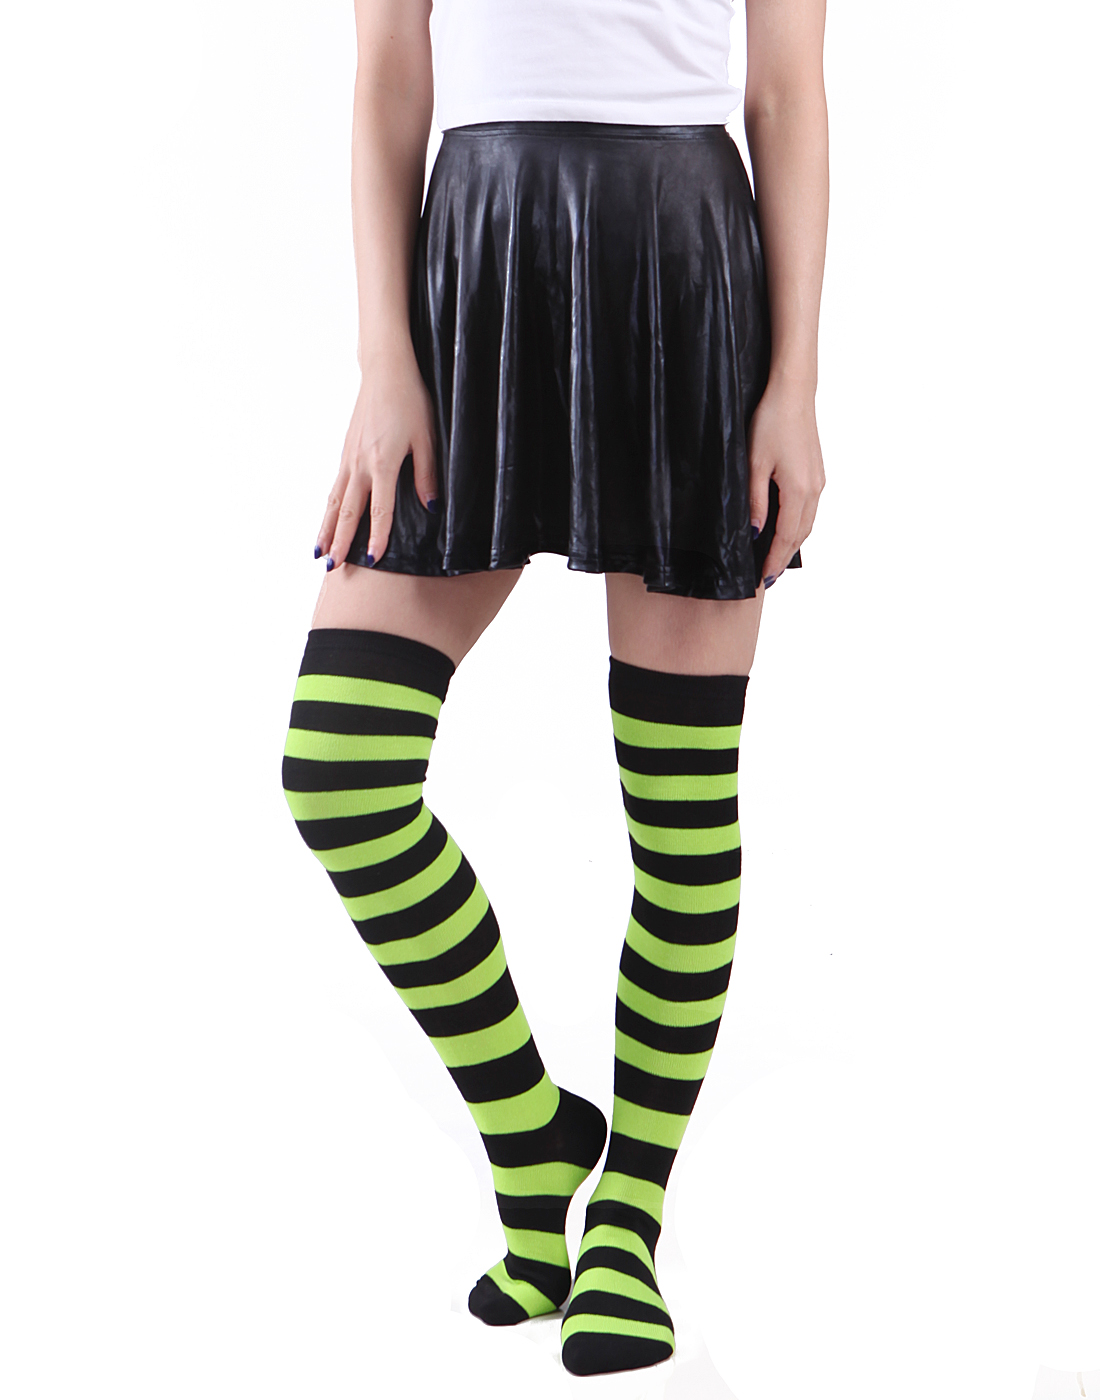 Women's Extra Long Striped Socks Over Knee High Opaque Stockings (Rainbow)